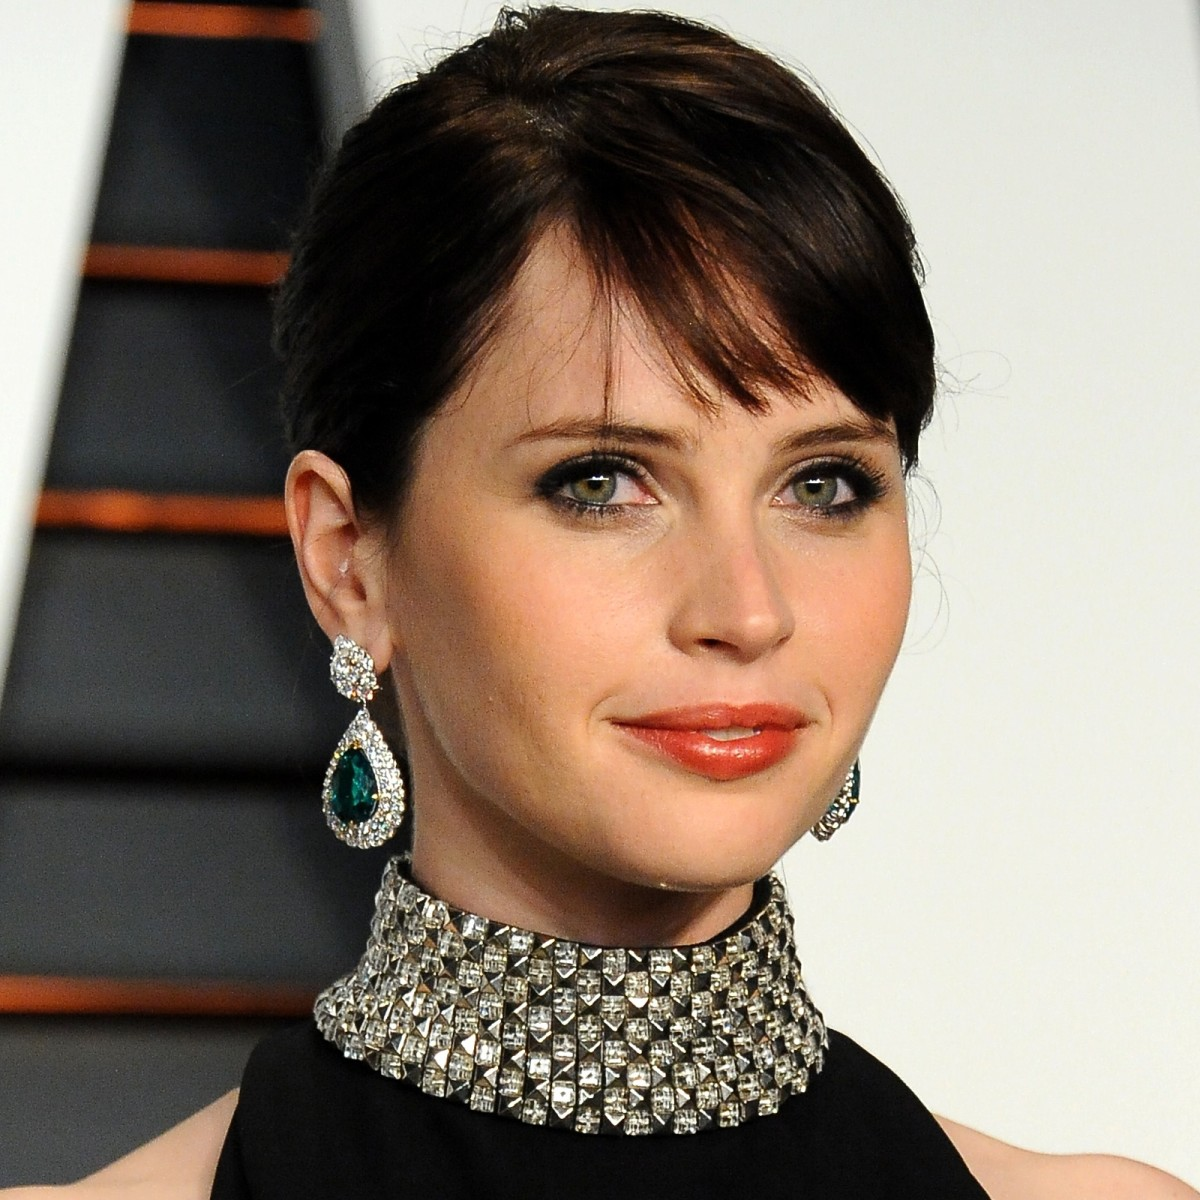 Felicity Jones photo via Getty Images